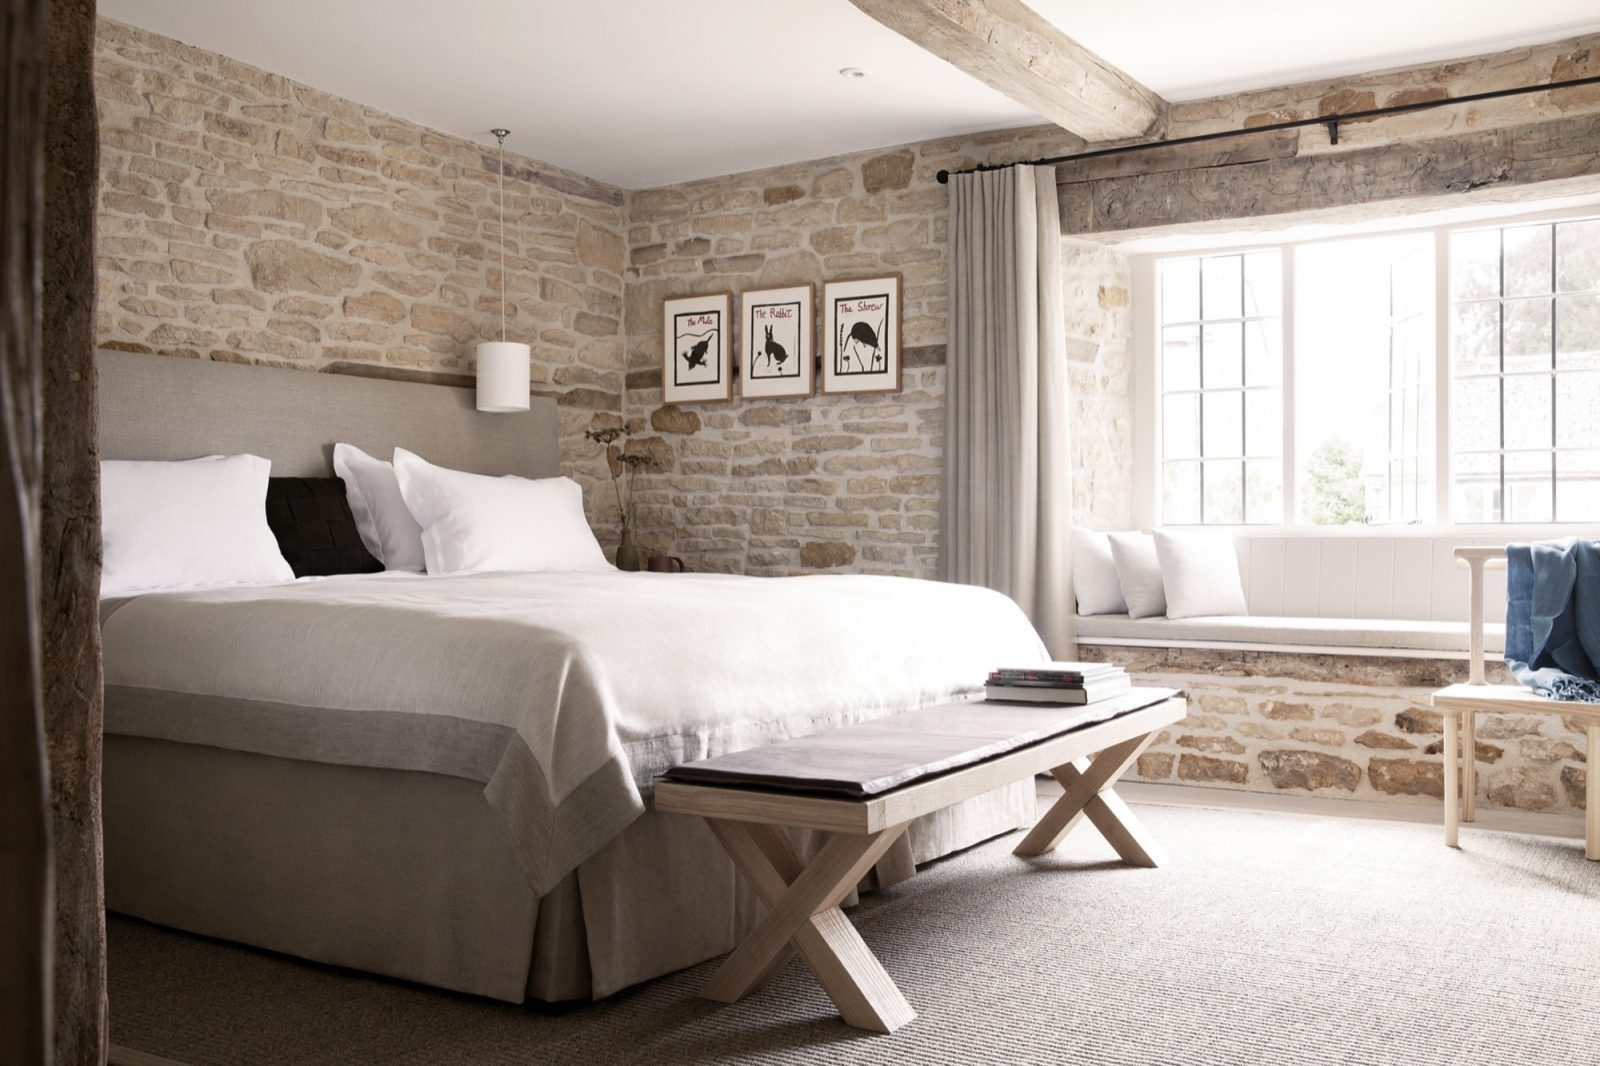 The Wild Rabbit, Kingham Pub with Rooms in Oxfordshire 19